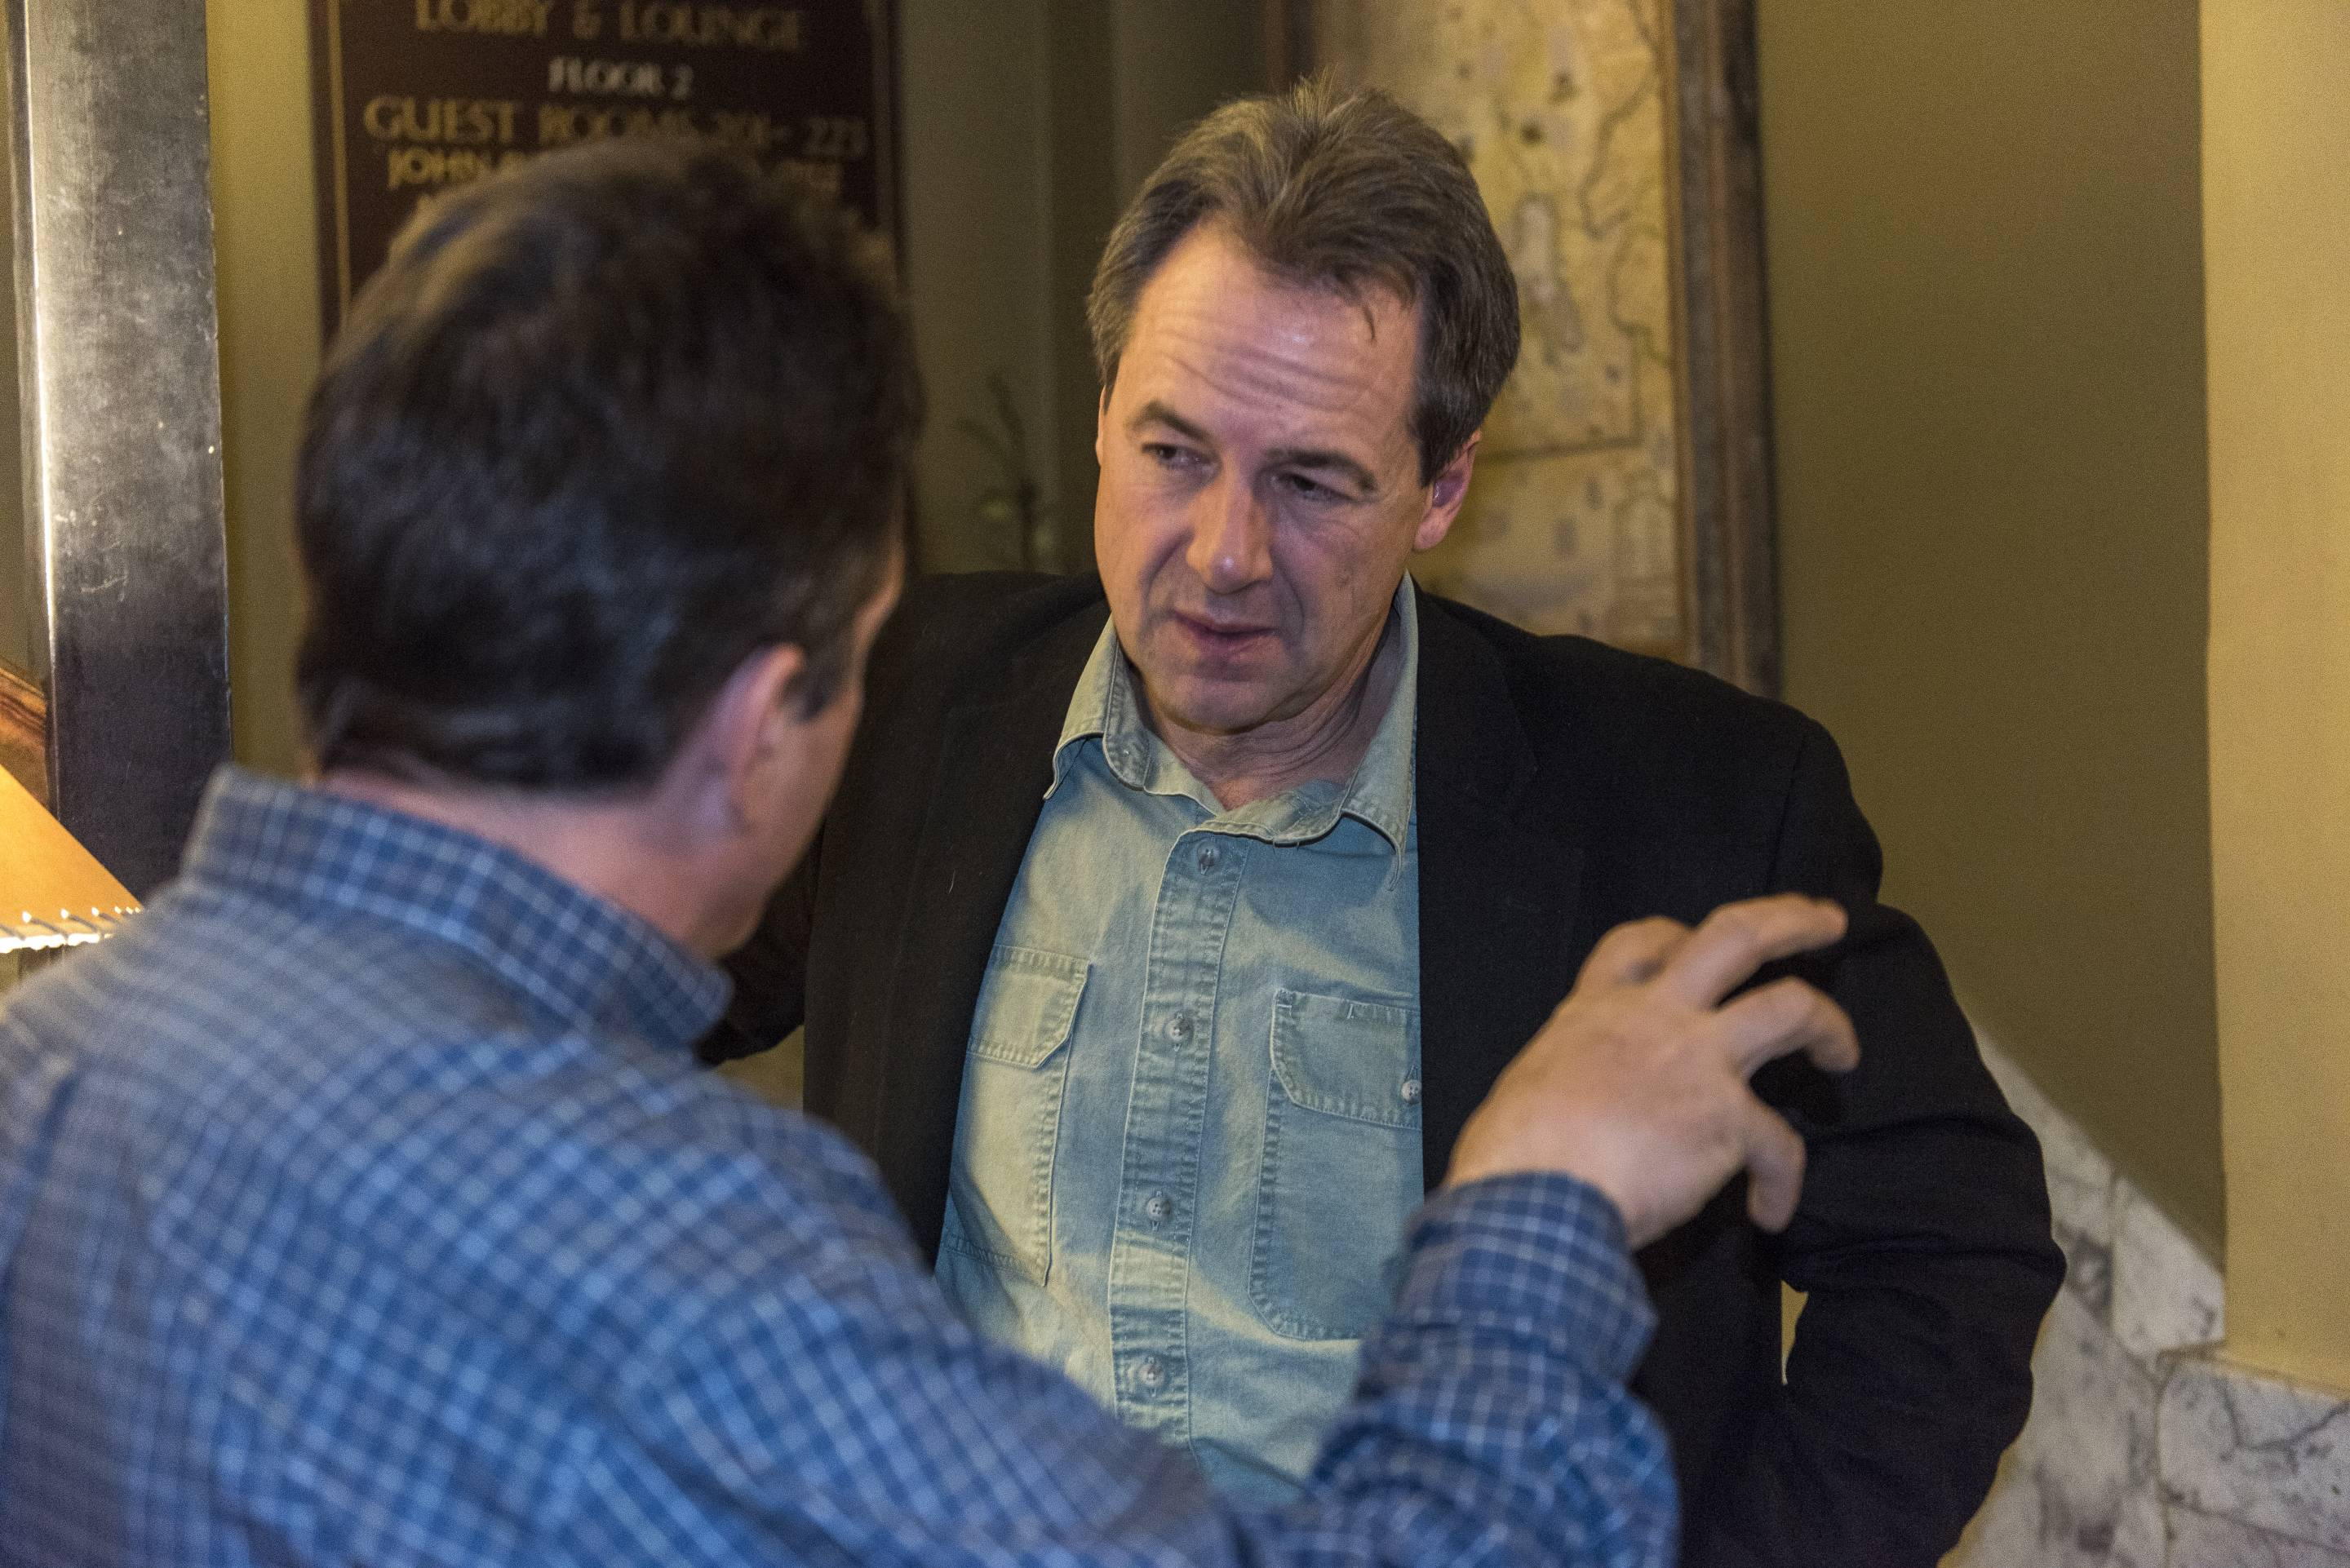 Montana Governor Steve Bullock talks with constituents.